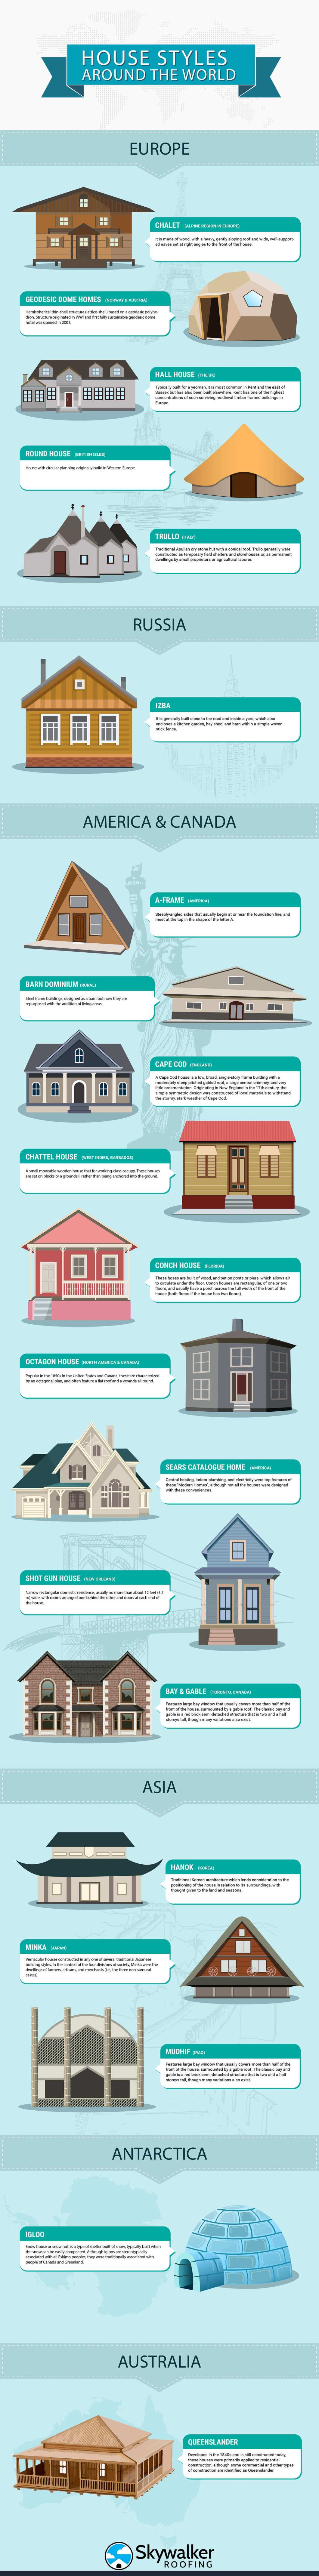 House Styles Around the World - Infographic